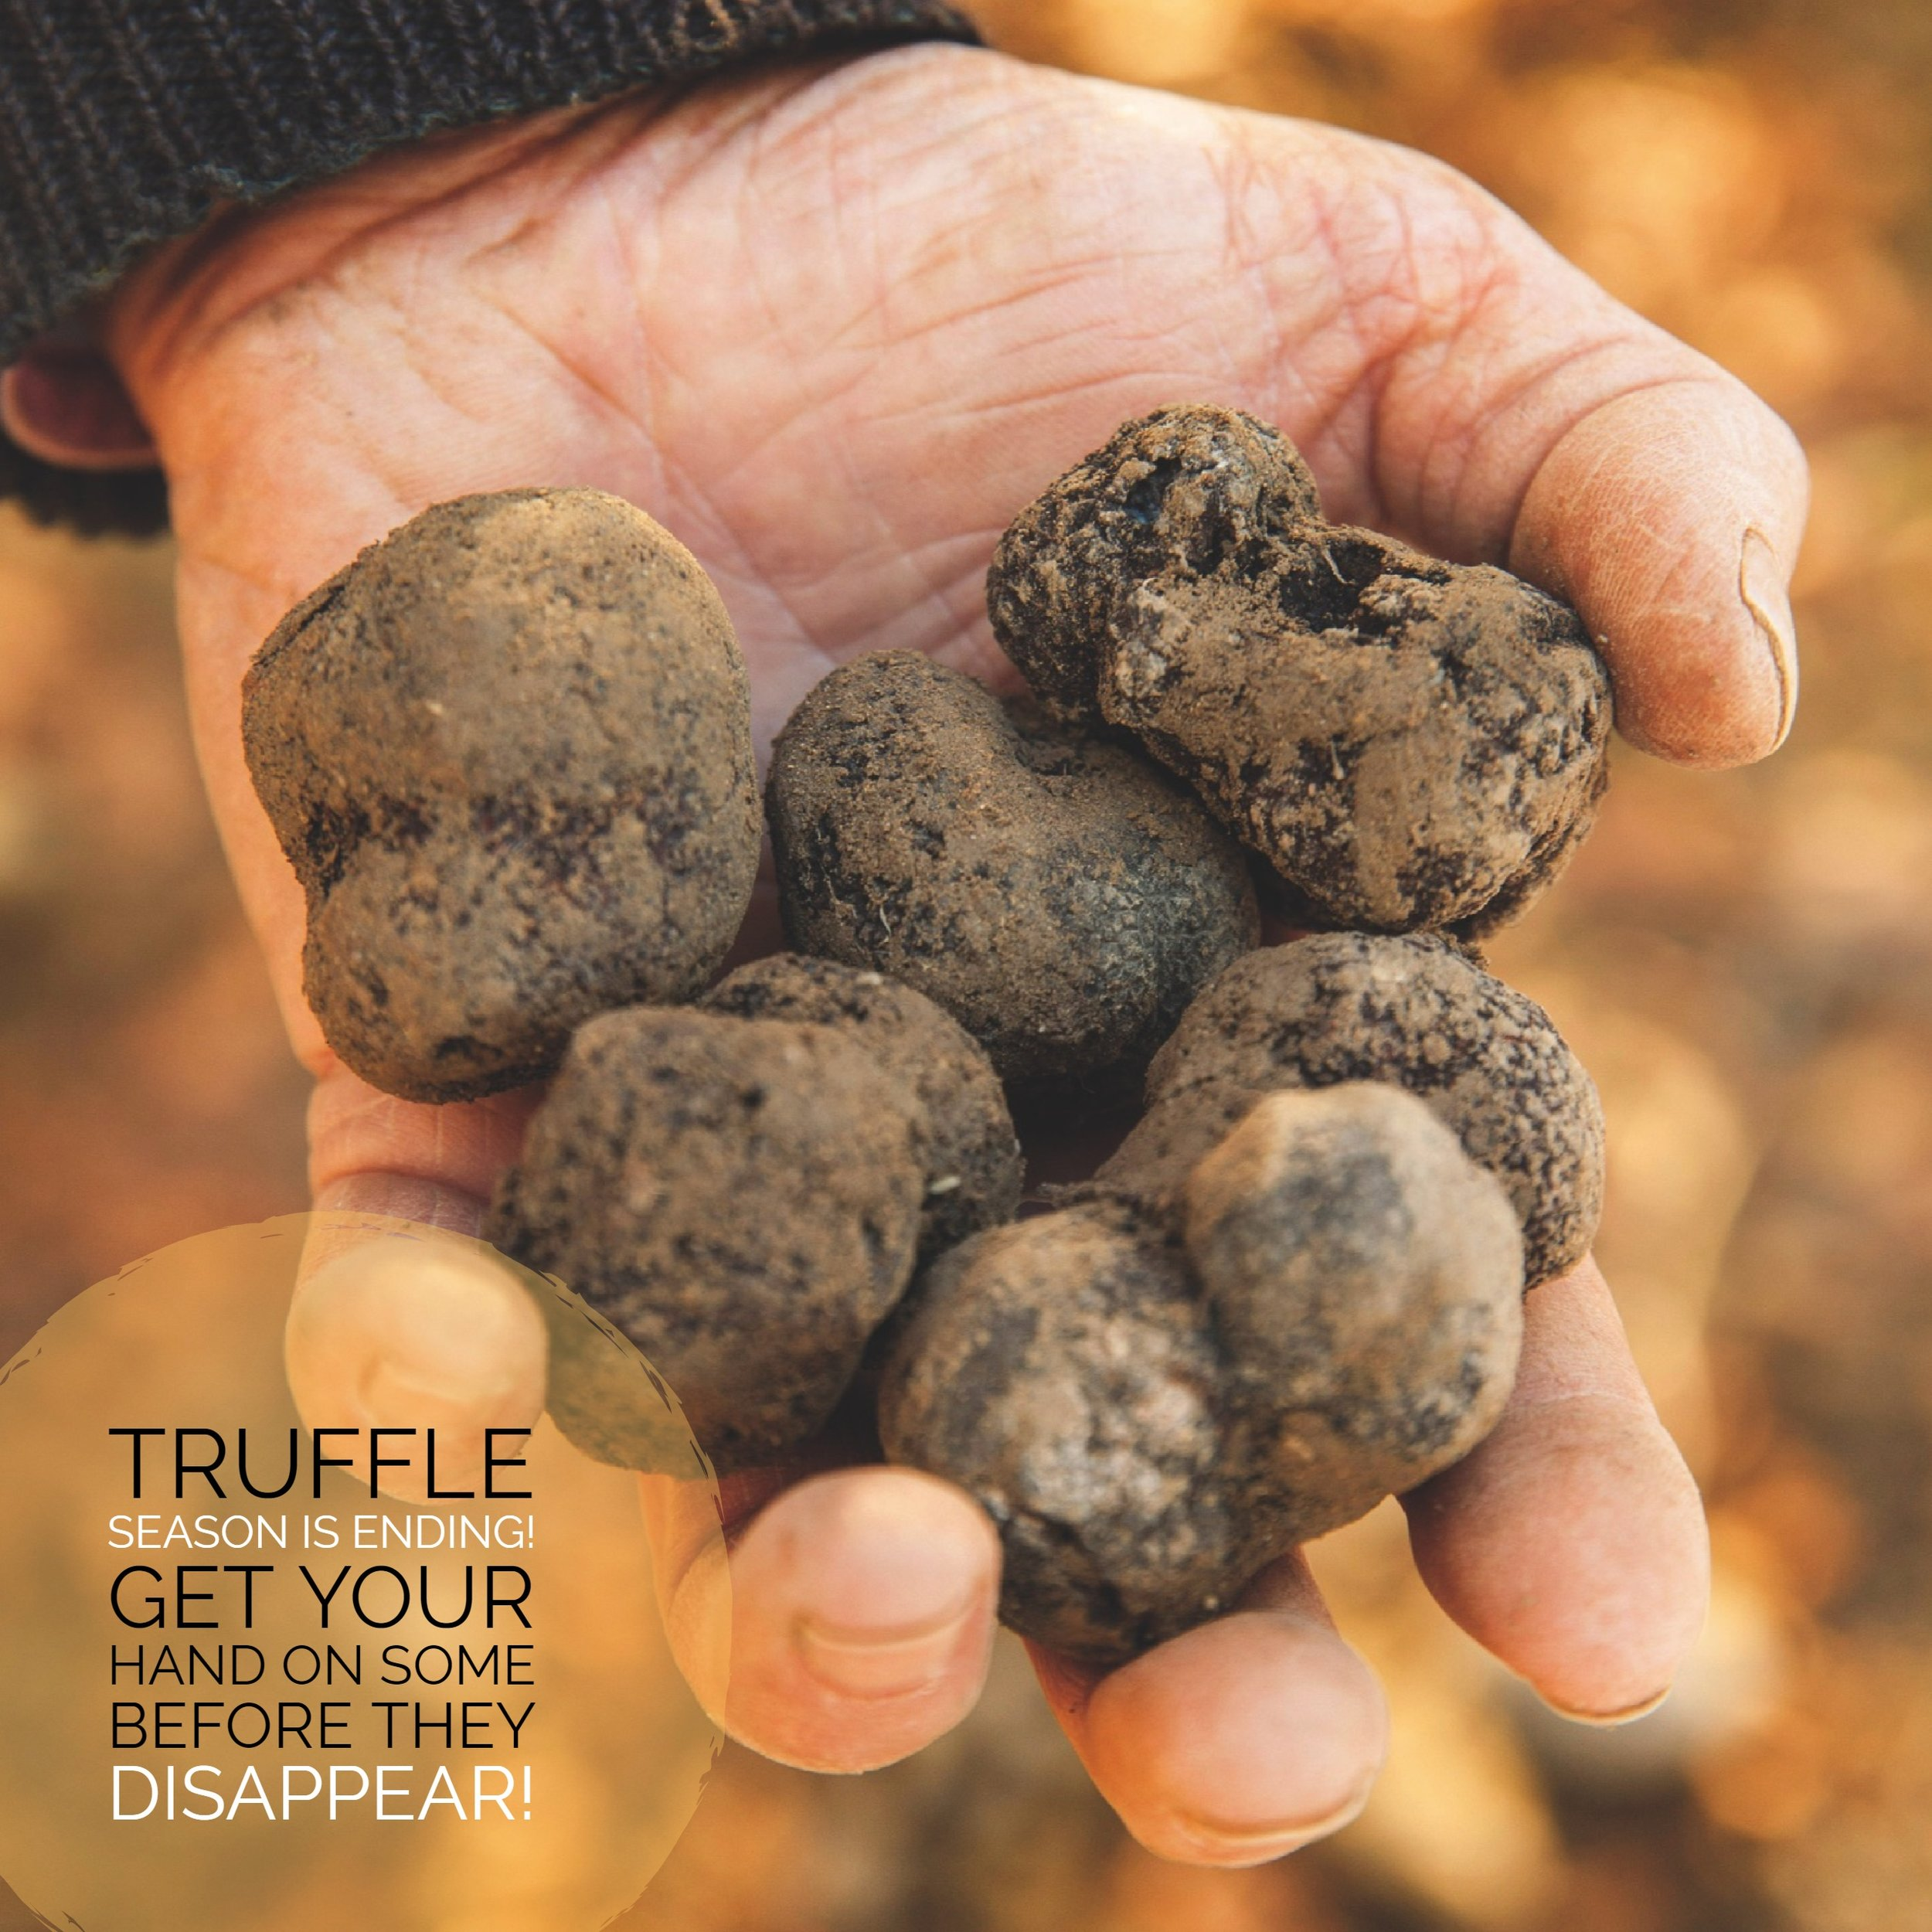 Black Truffle Season is Ending